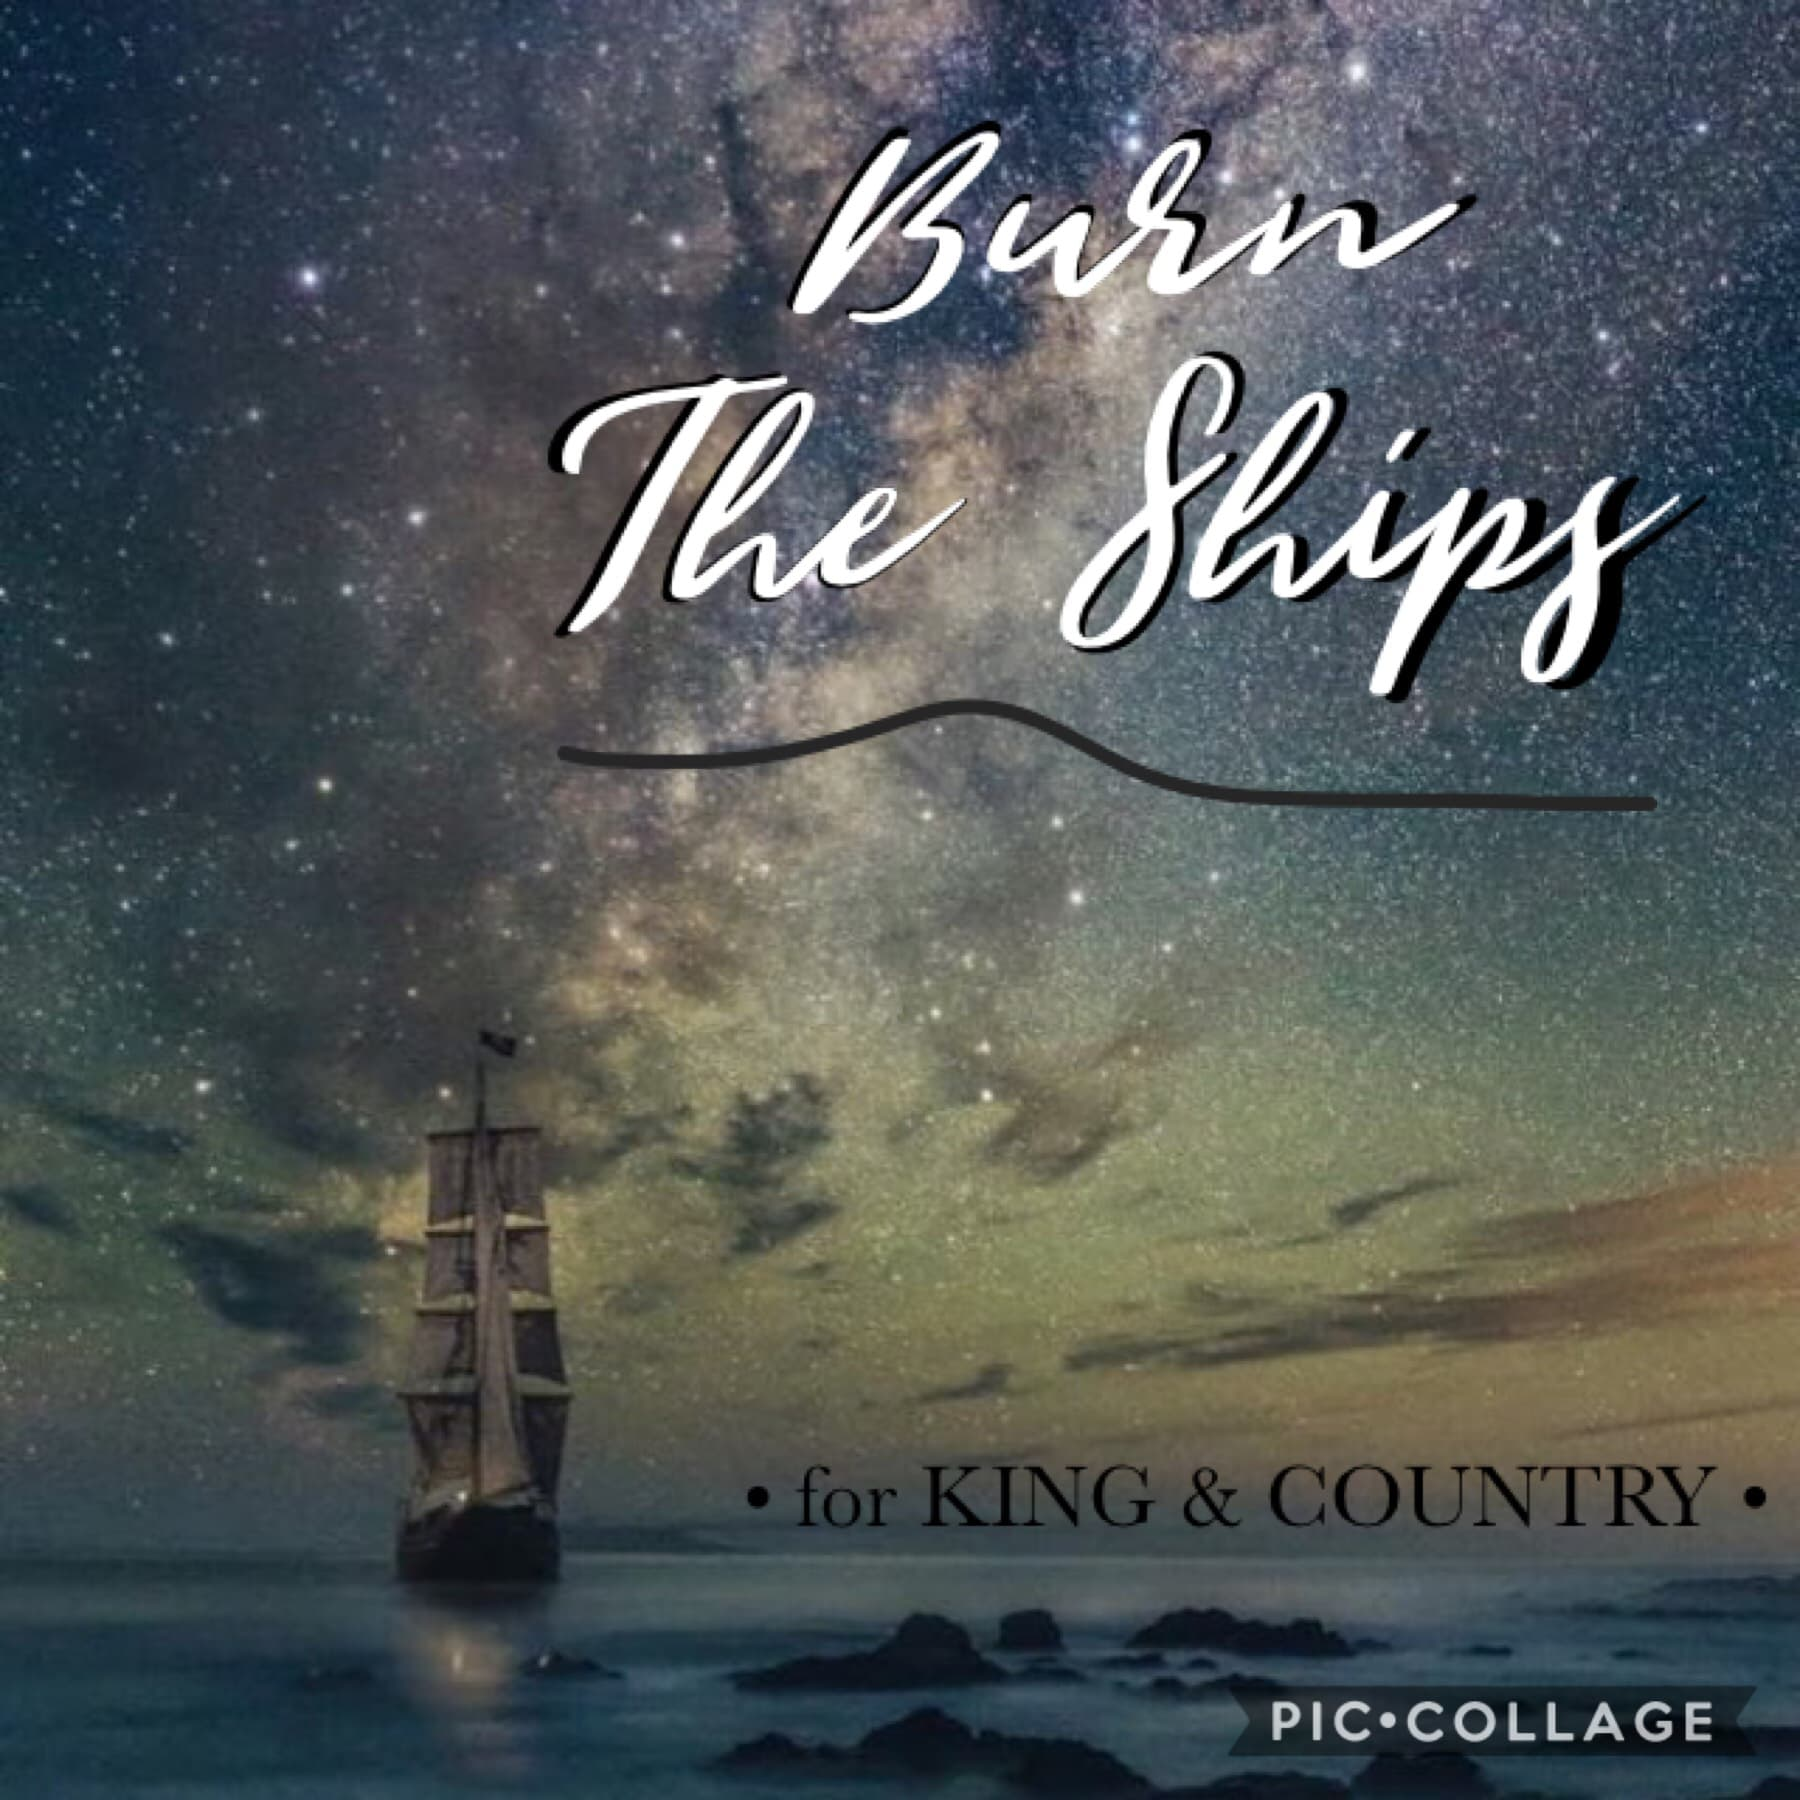 Song of the week/album of the month! 🎶 🔥 🌌 (Pic credit: floha. ✨ ) Ik it came out last month, and I just recently used this font, but idc. 😂 Today was Hug-a-bear Day, 🧸 Little League Girls Day, 🥎 National Eating Healthy Day, 🥬 and Stress Awareness Day! 😖